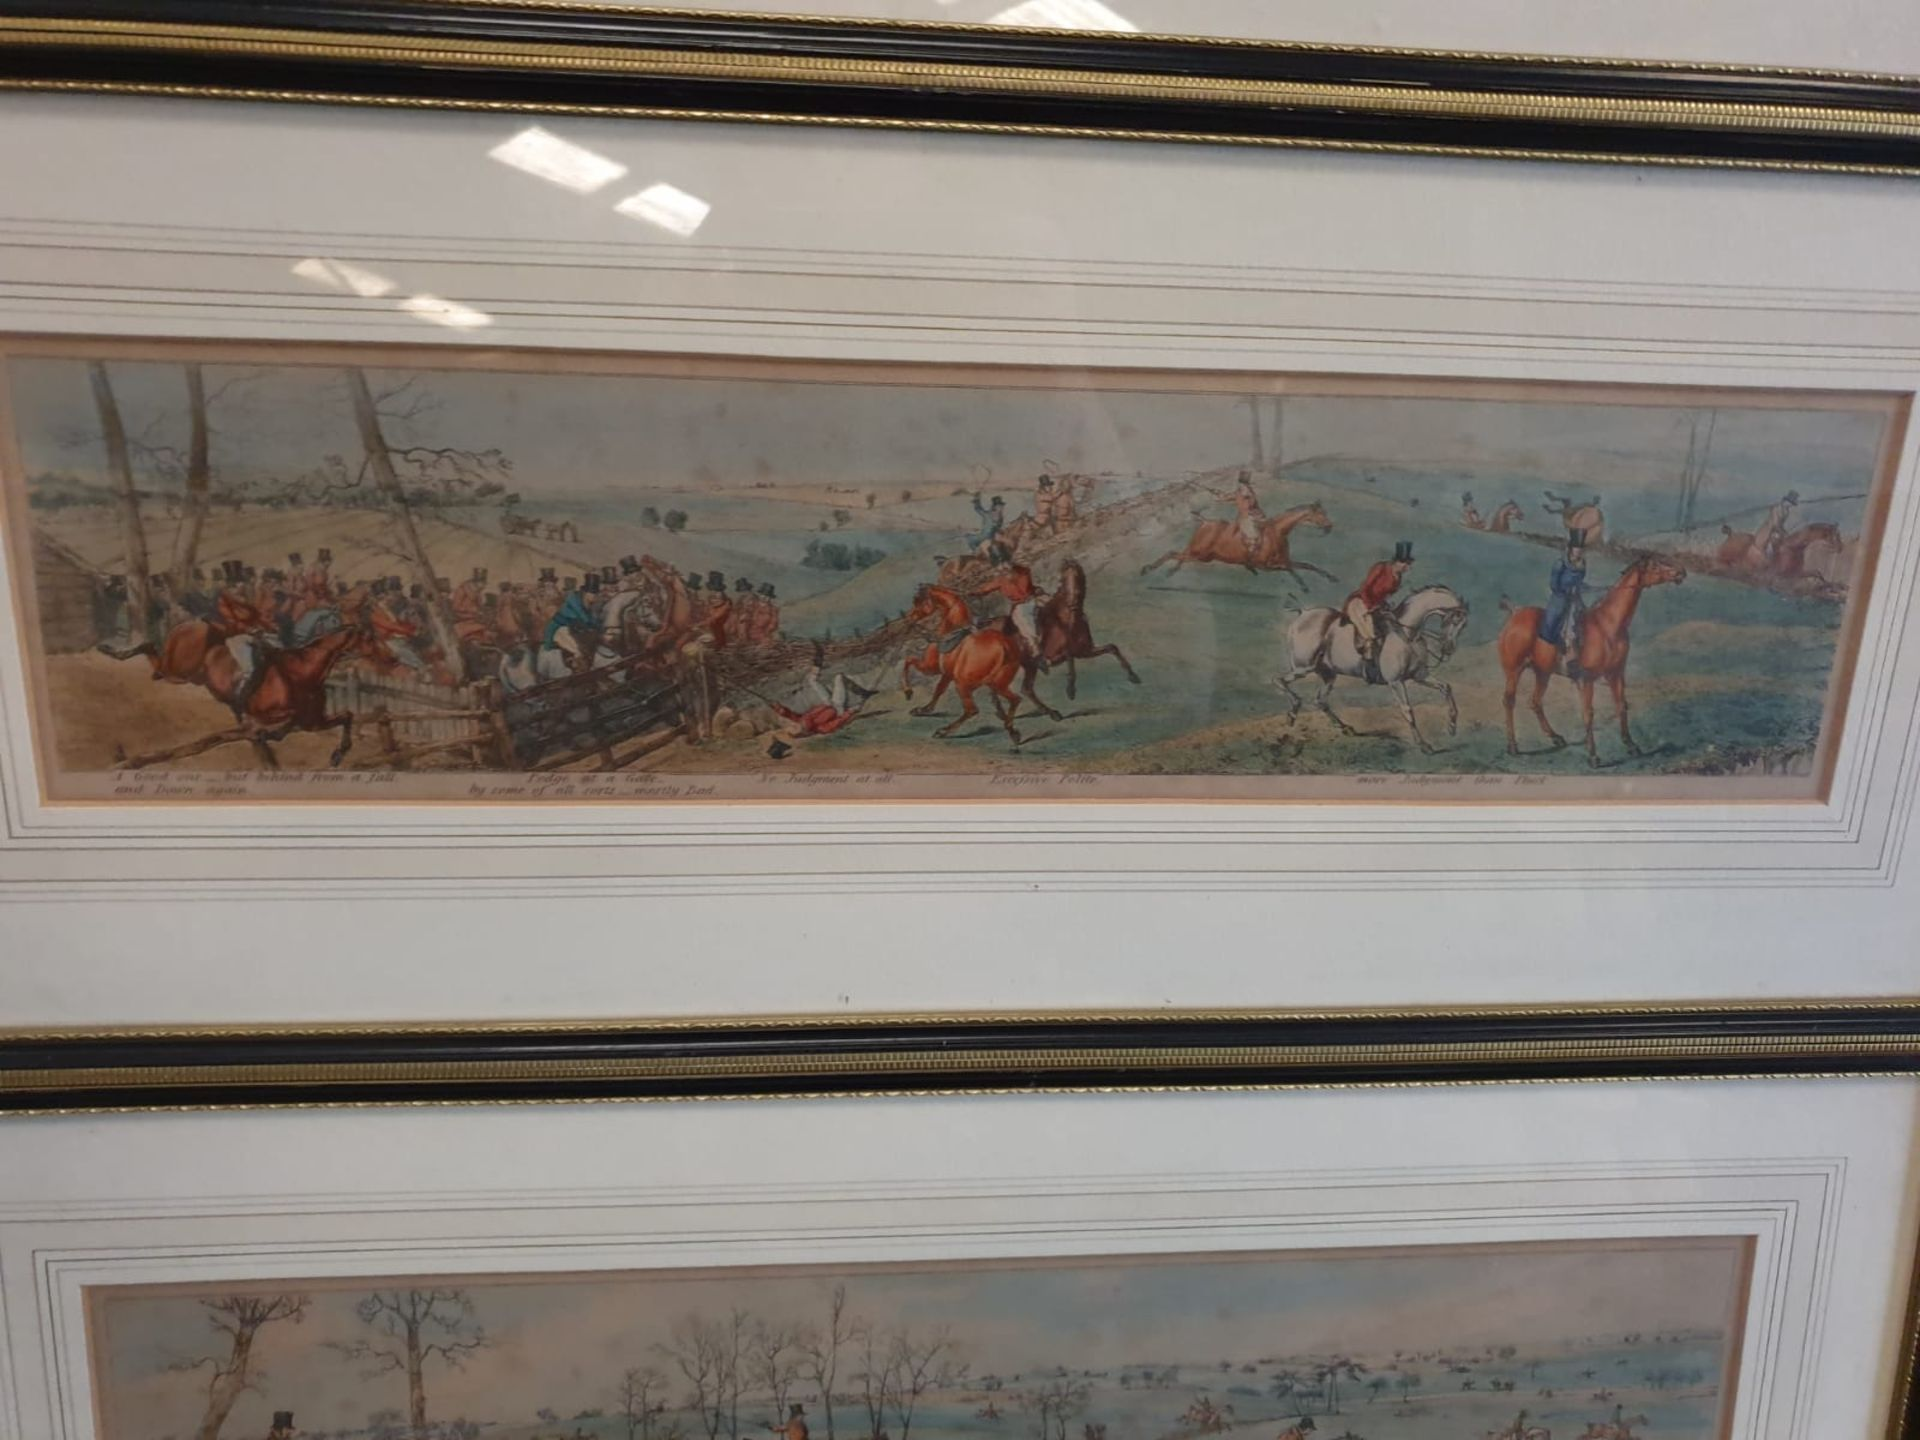 A set of 3 framed coloured panorma Hunters prints titled Lets take the road, Excersive polite, A - Image 5 of 6